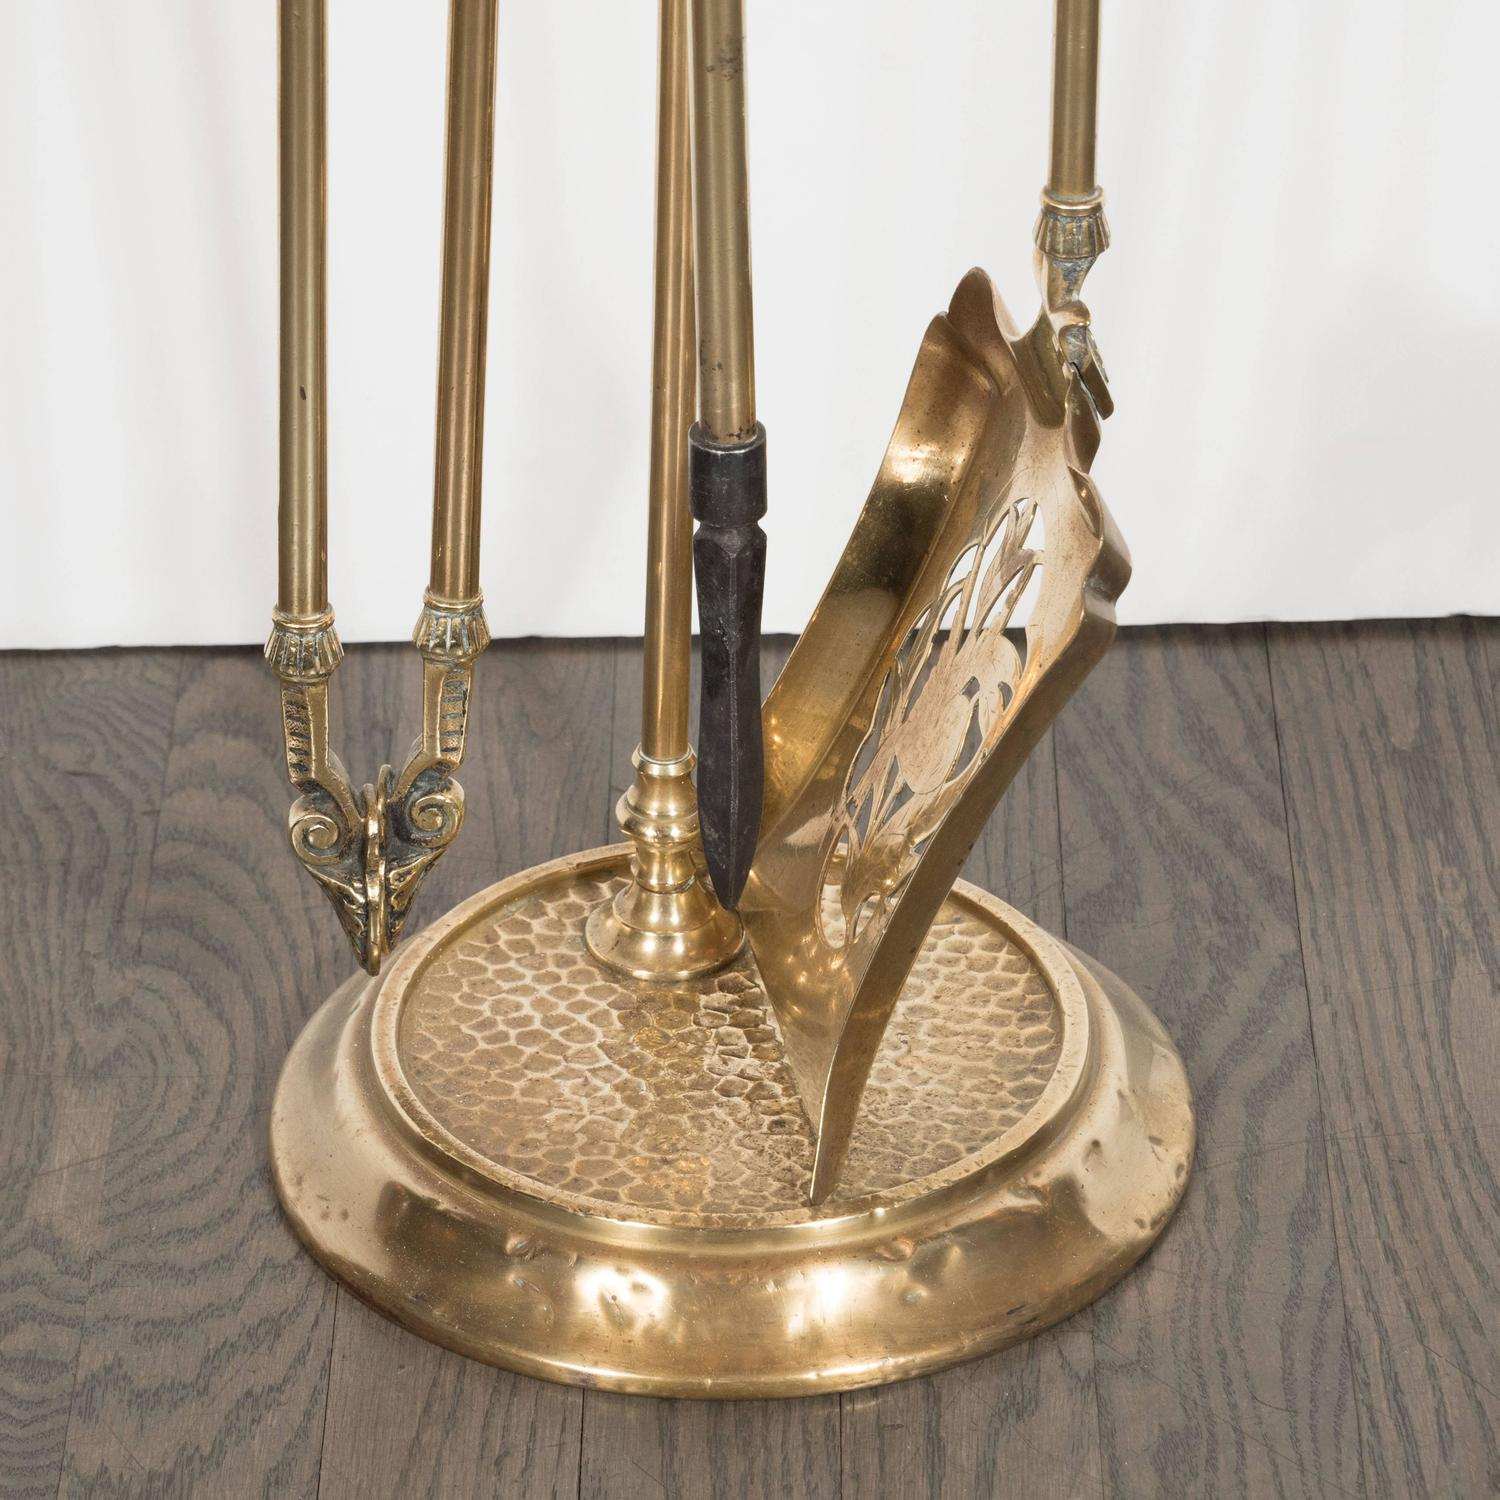 Antique Brass Fire Tool Set France circa 1900 For Sale